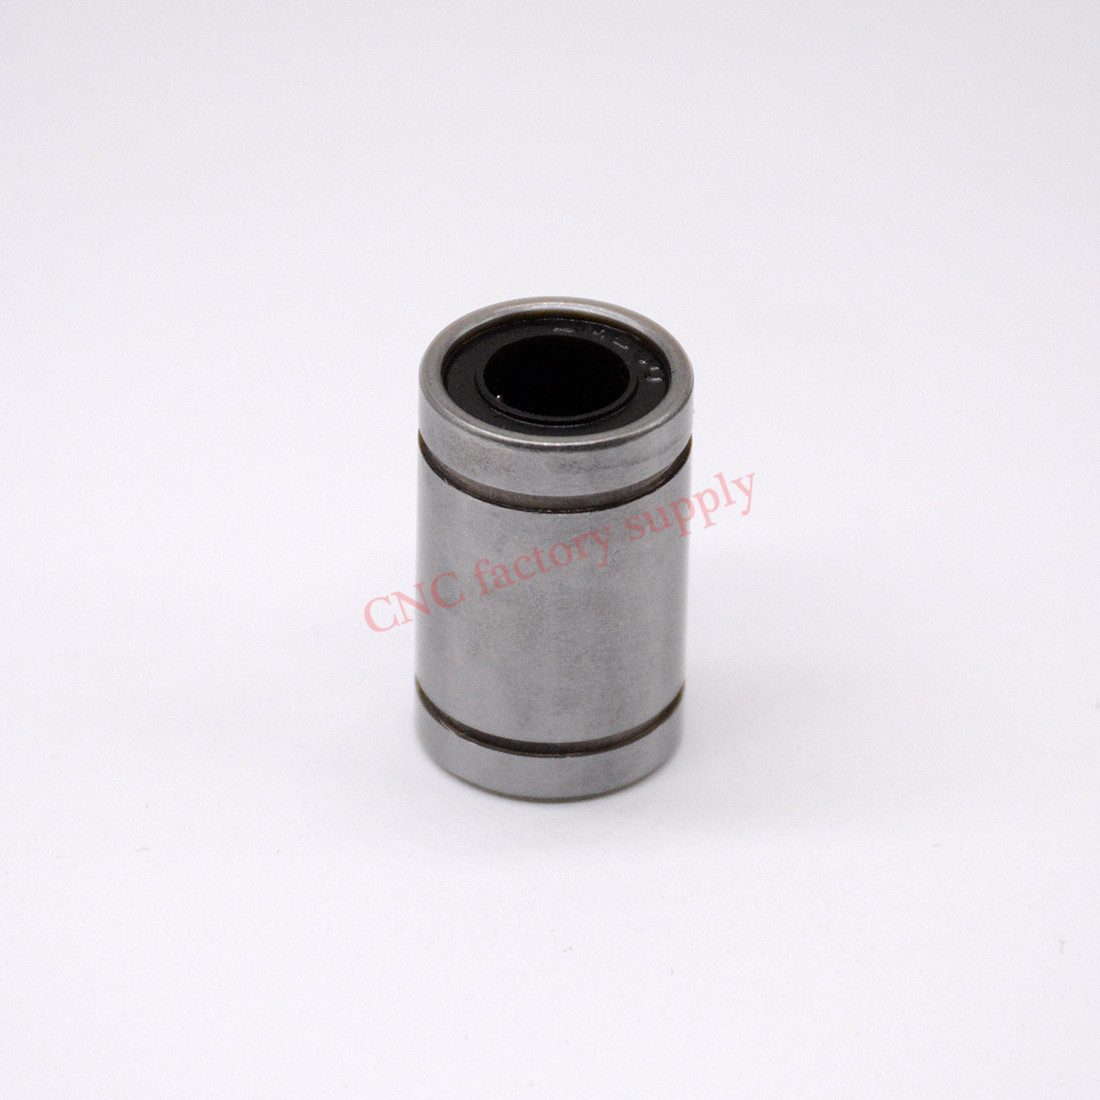 Free shipping LM6UU Linear Bushing 6mm CNC Linear Bearings 12pcs free shipping lm60uu 60mm linear bushing cnc linear bearings